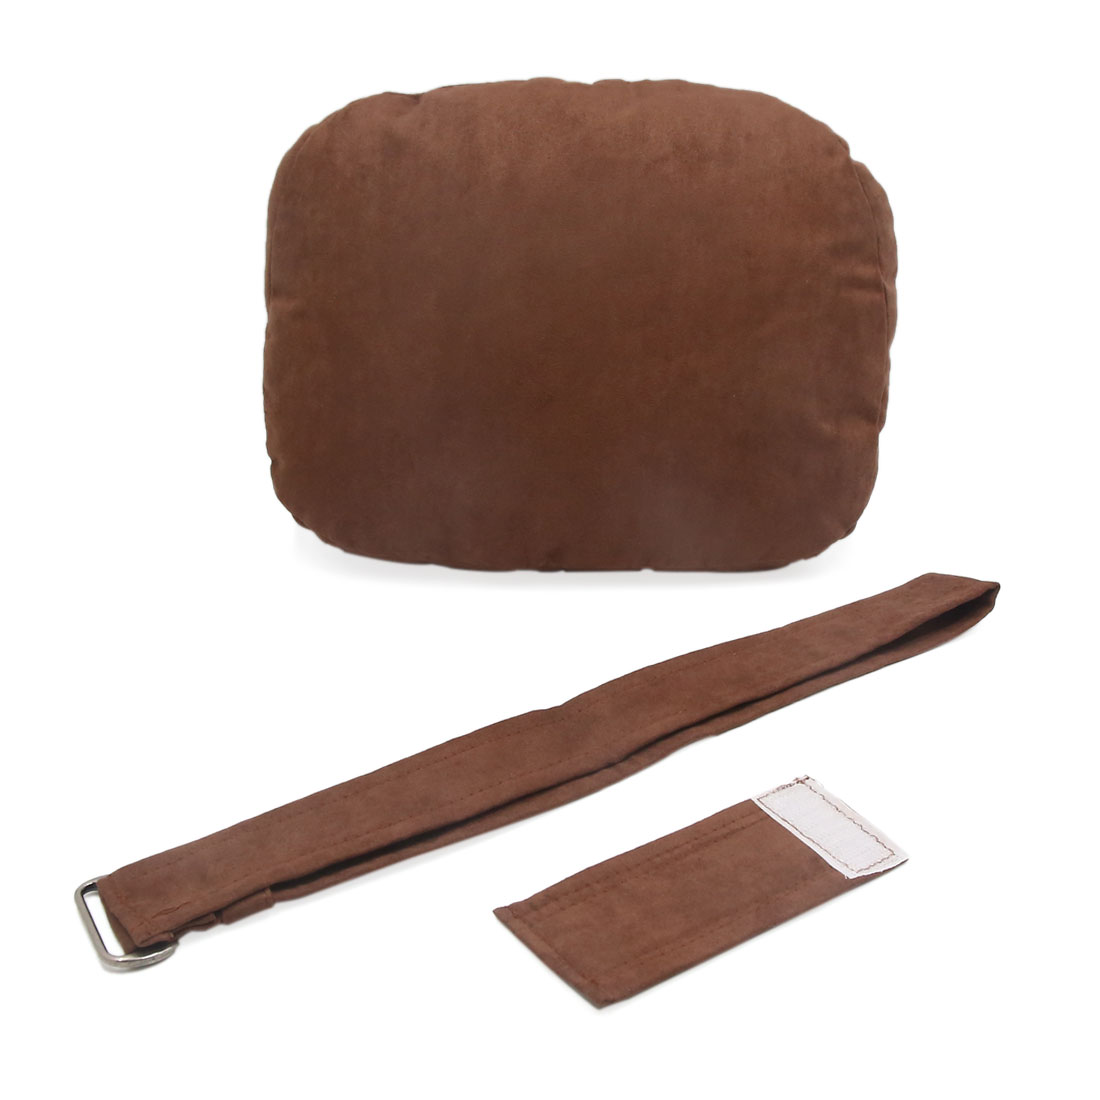 Brown Memory Foam Padding Car Seat Headrest Pillow Neck Rest Support Cushion Pad - image 4 of 4